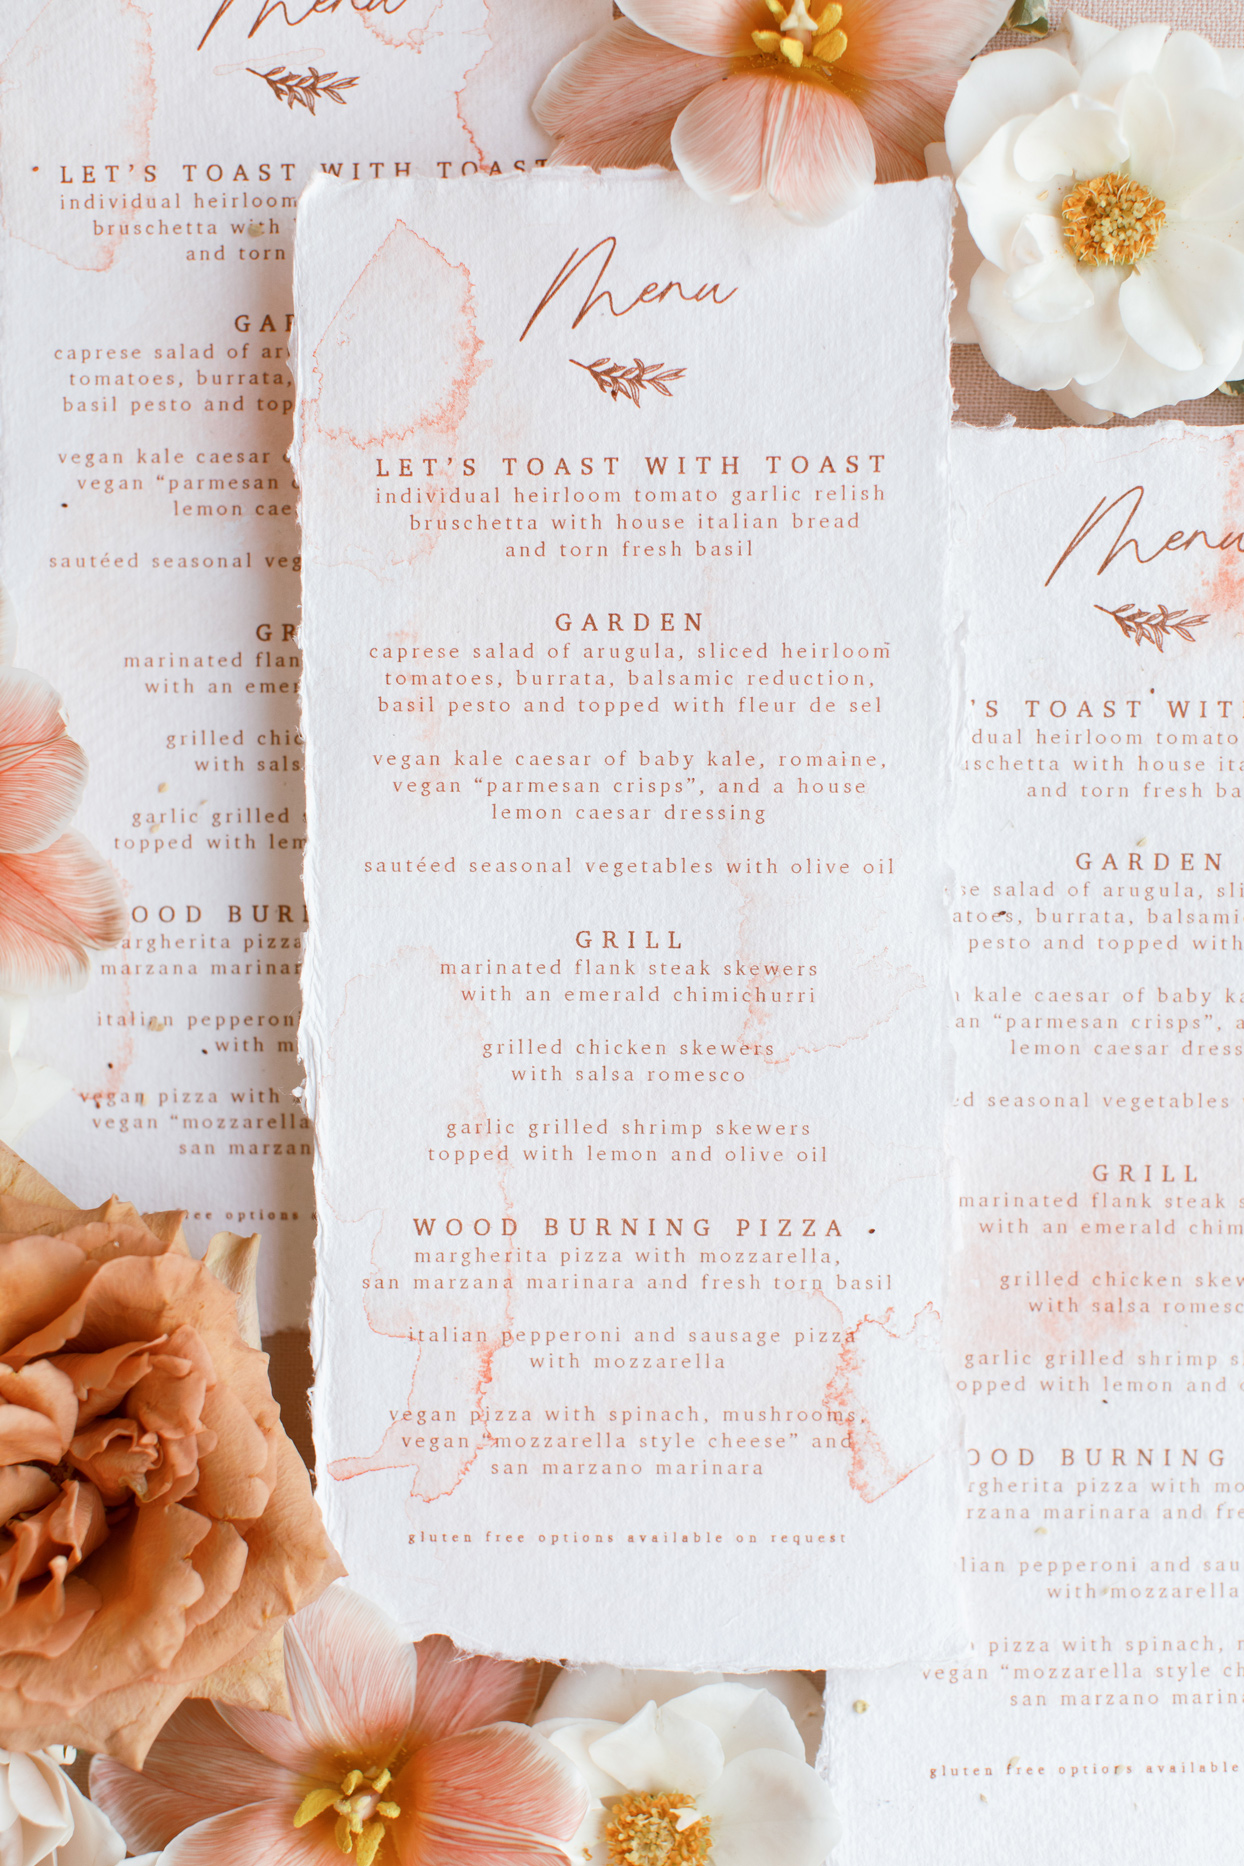 Reception menu made with watercolor on handmade paper